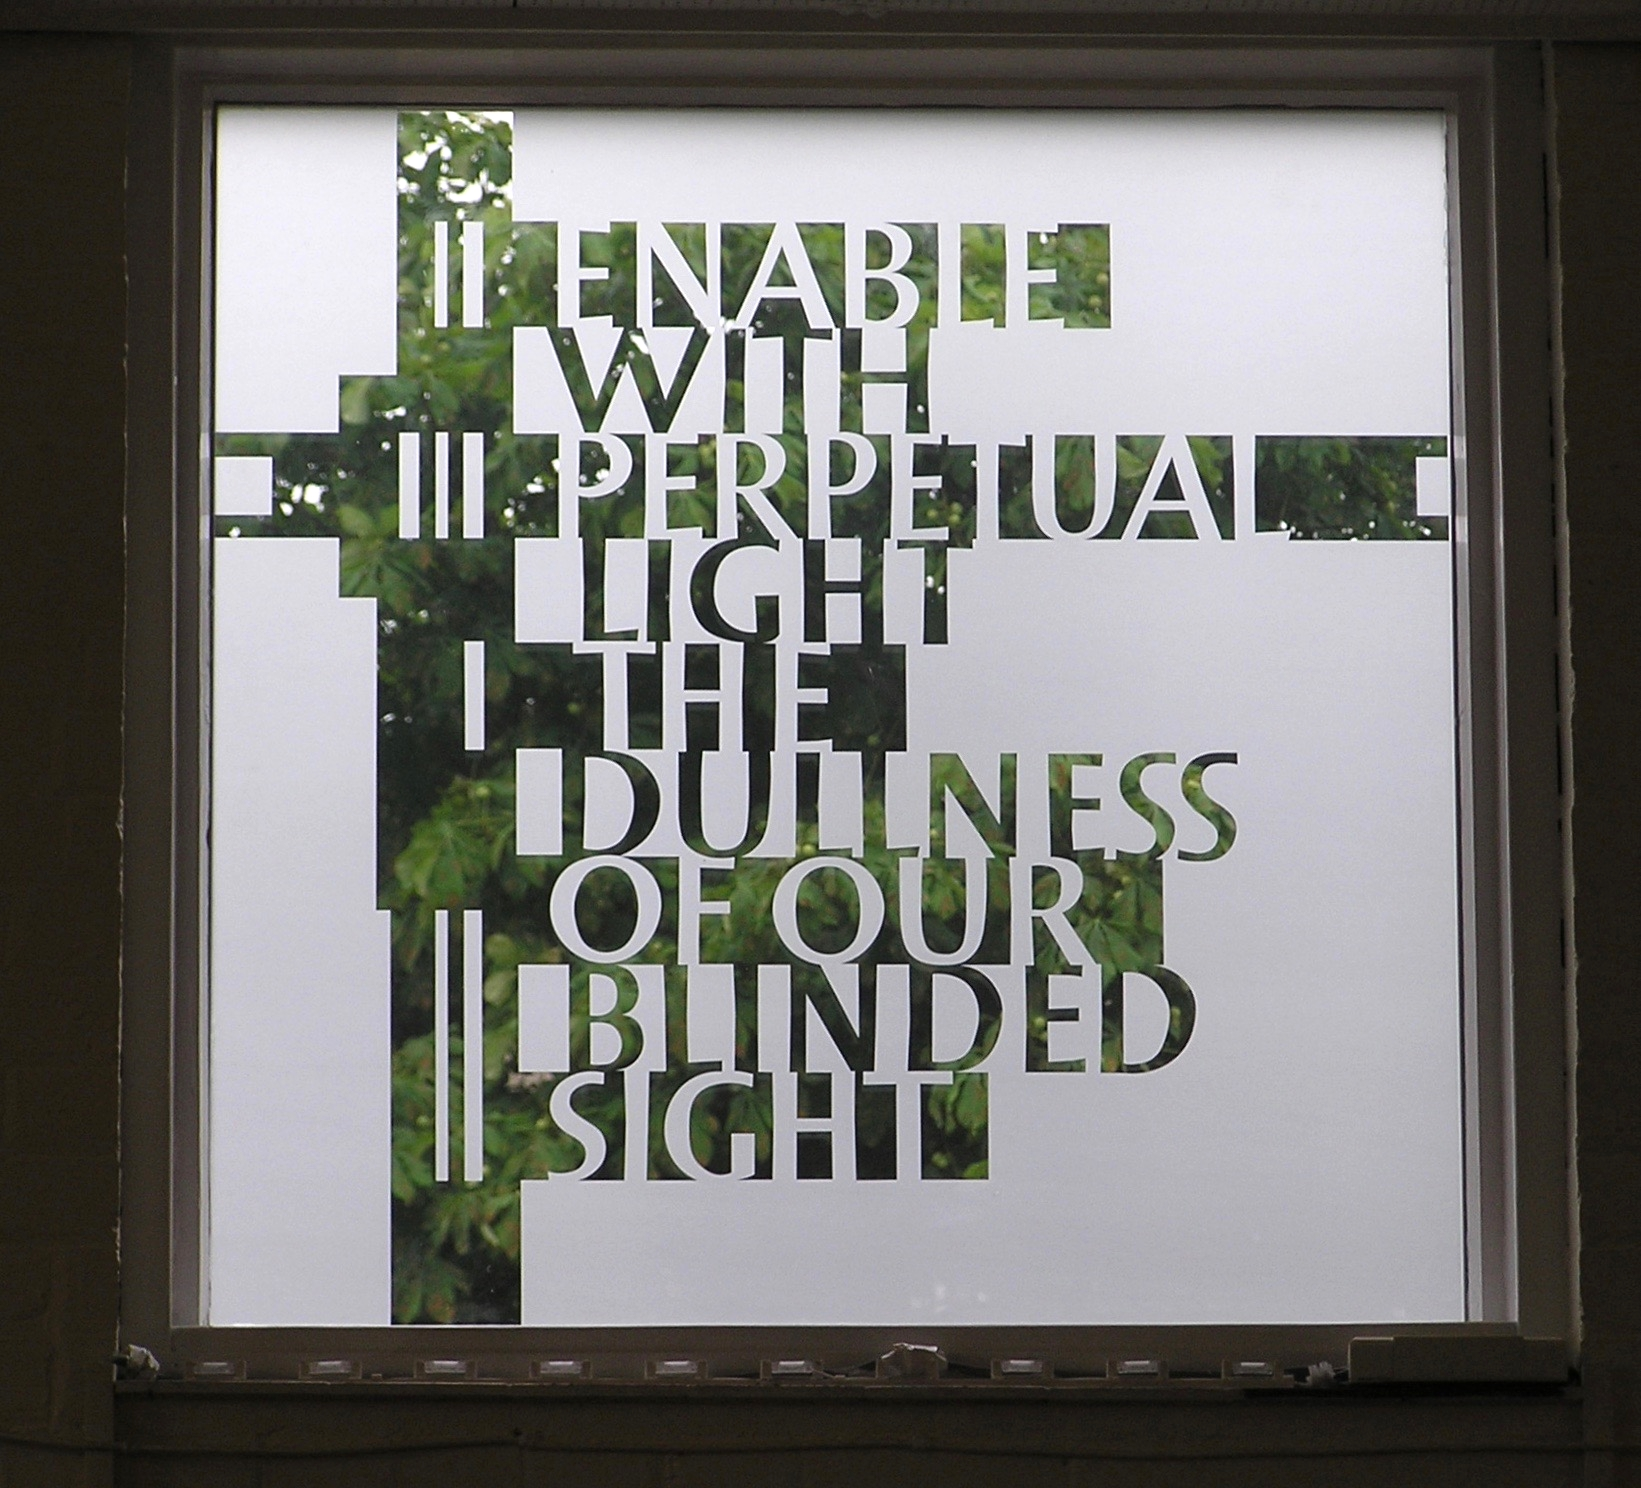 Design for a window of St James' church Cambridge, cut out of film and applied to appear as if it is etched.